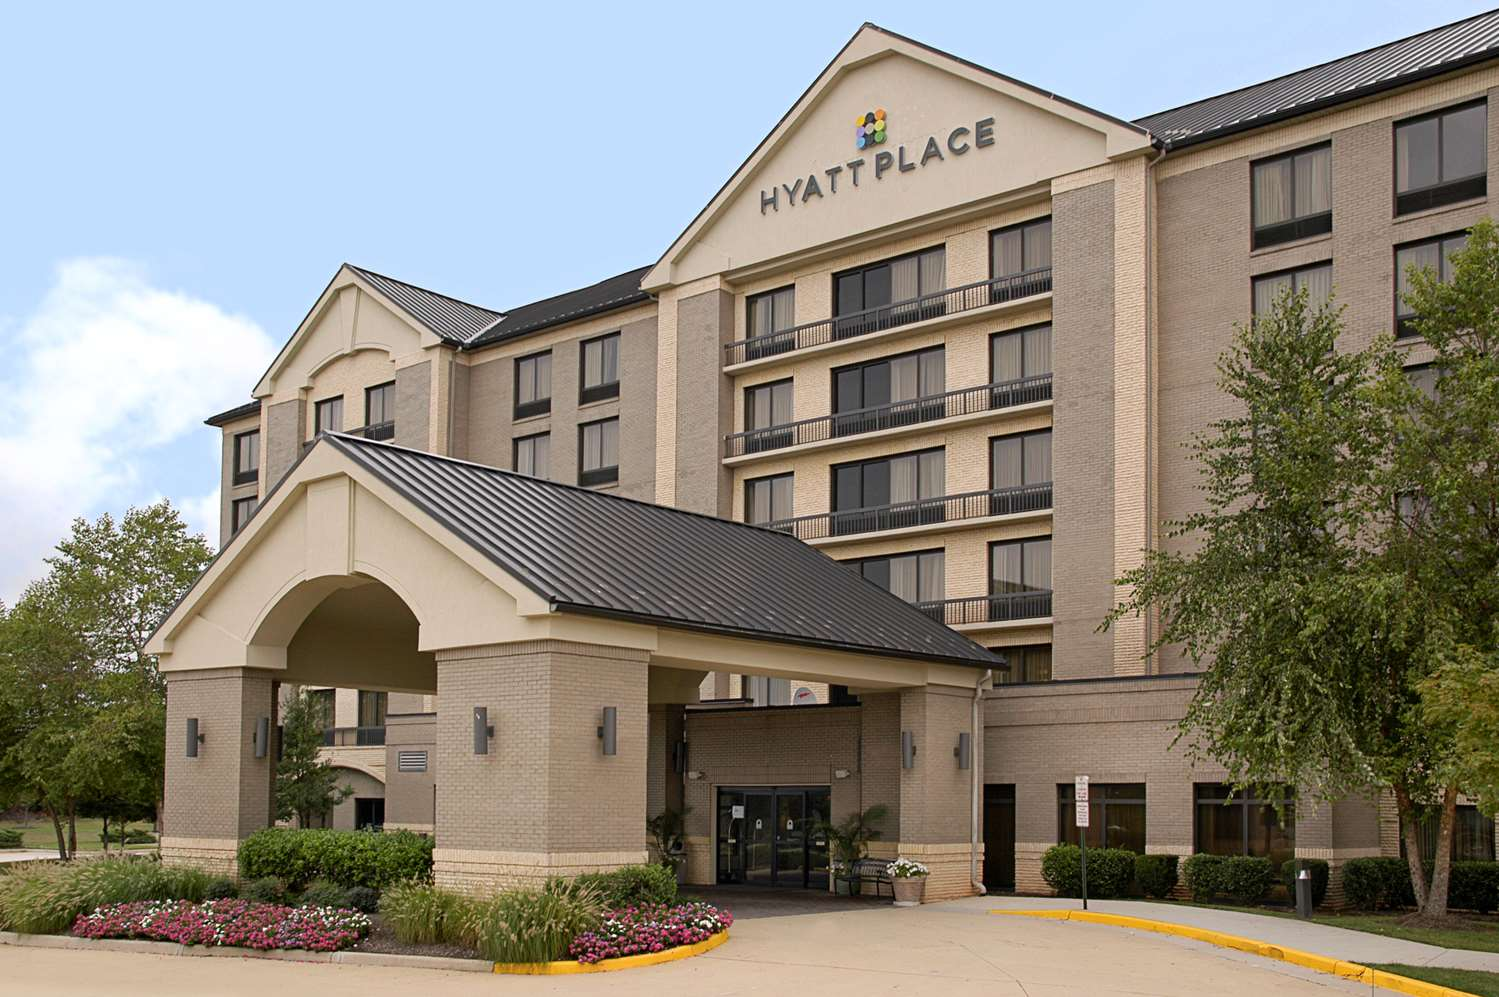 Hyatt Place Hotel Sterling